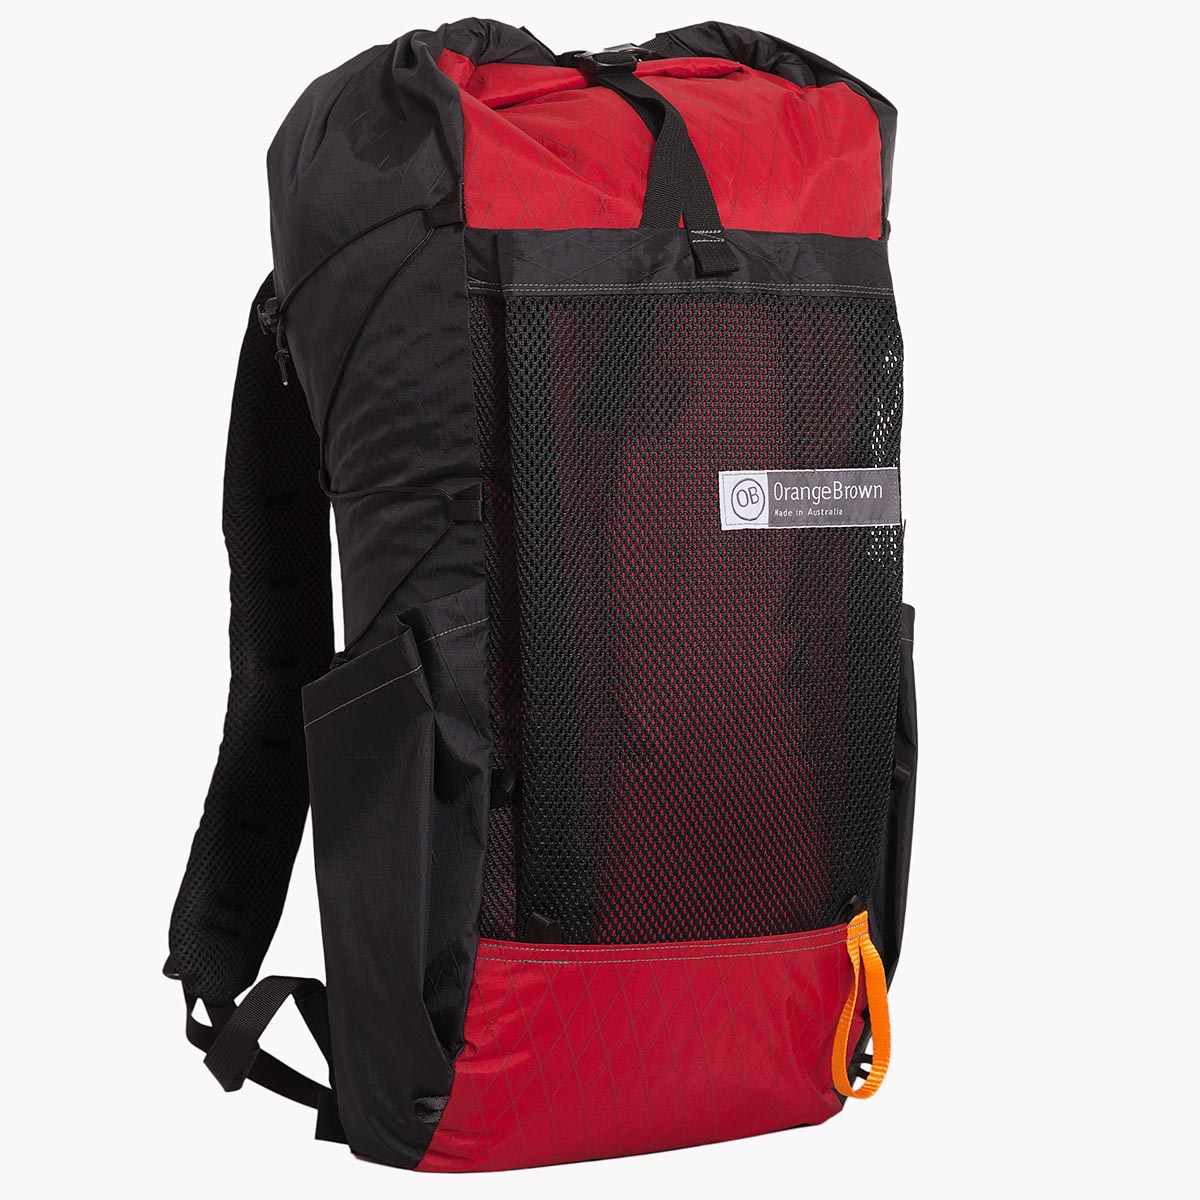 OrangeBrown ultralight backpack OB36 with roll top, large mesh pocket and two side pockets. Colours red and black.